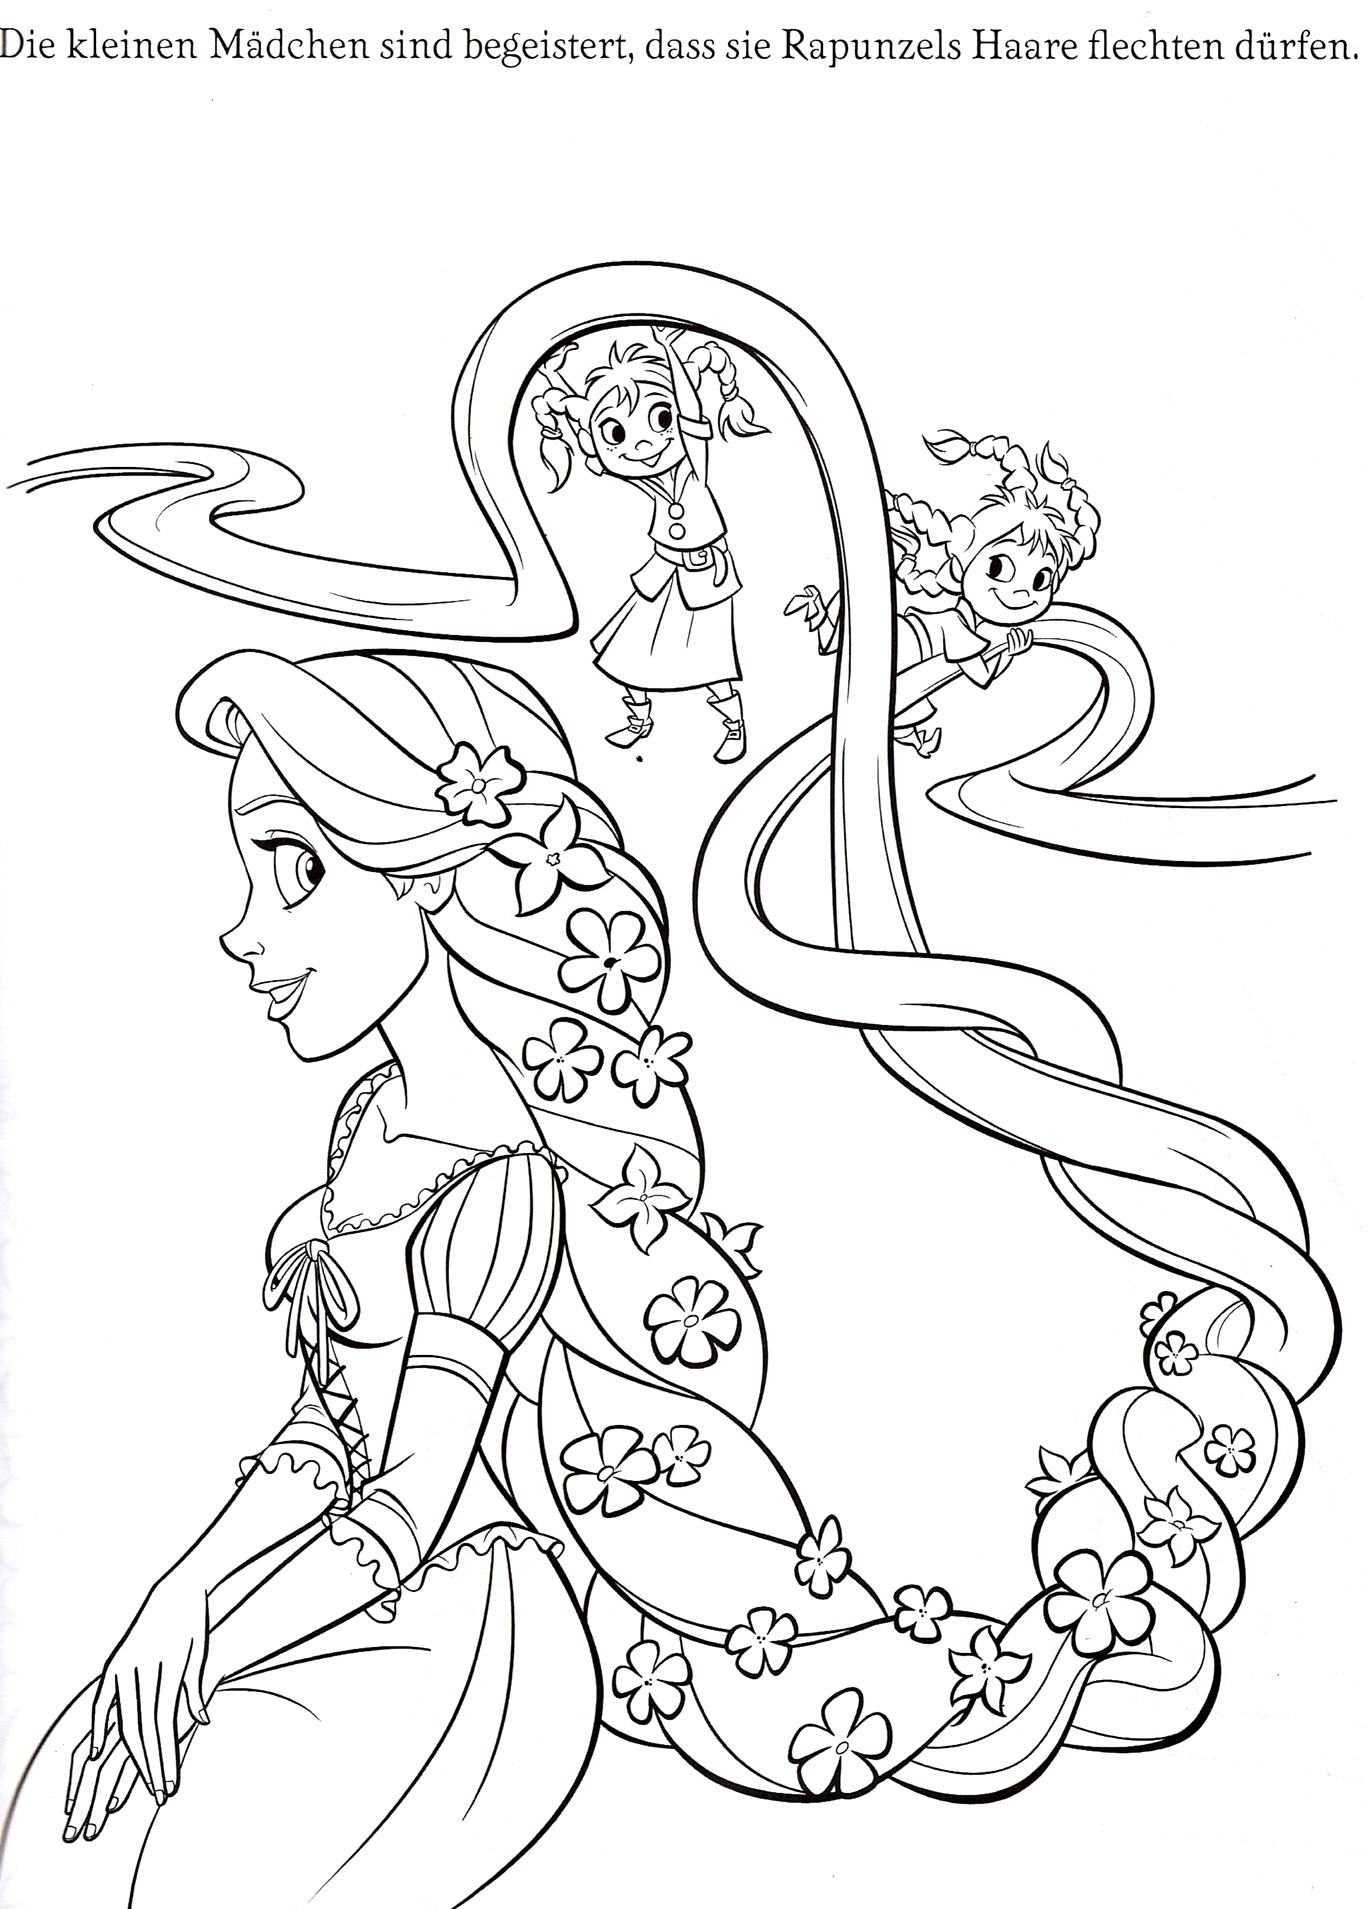 Rapunzel coloring pages to download